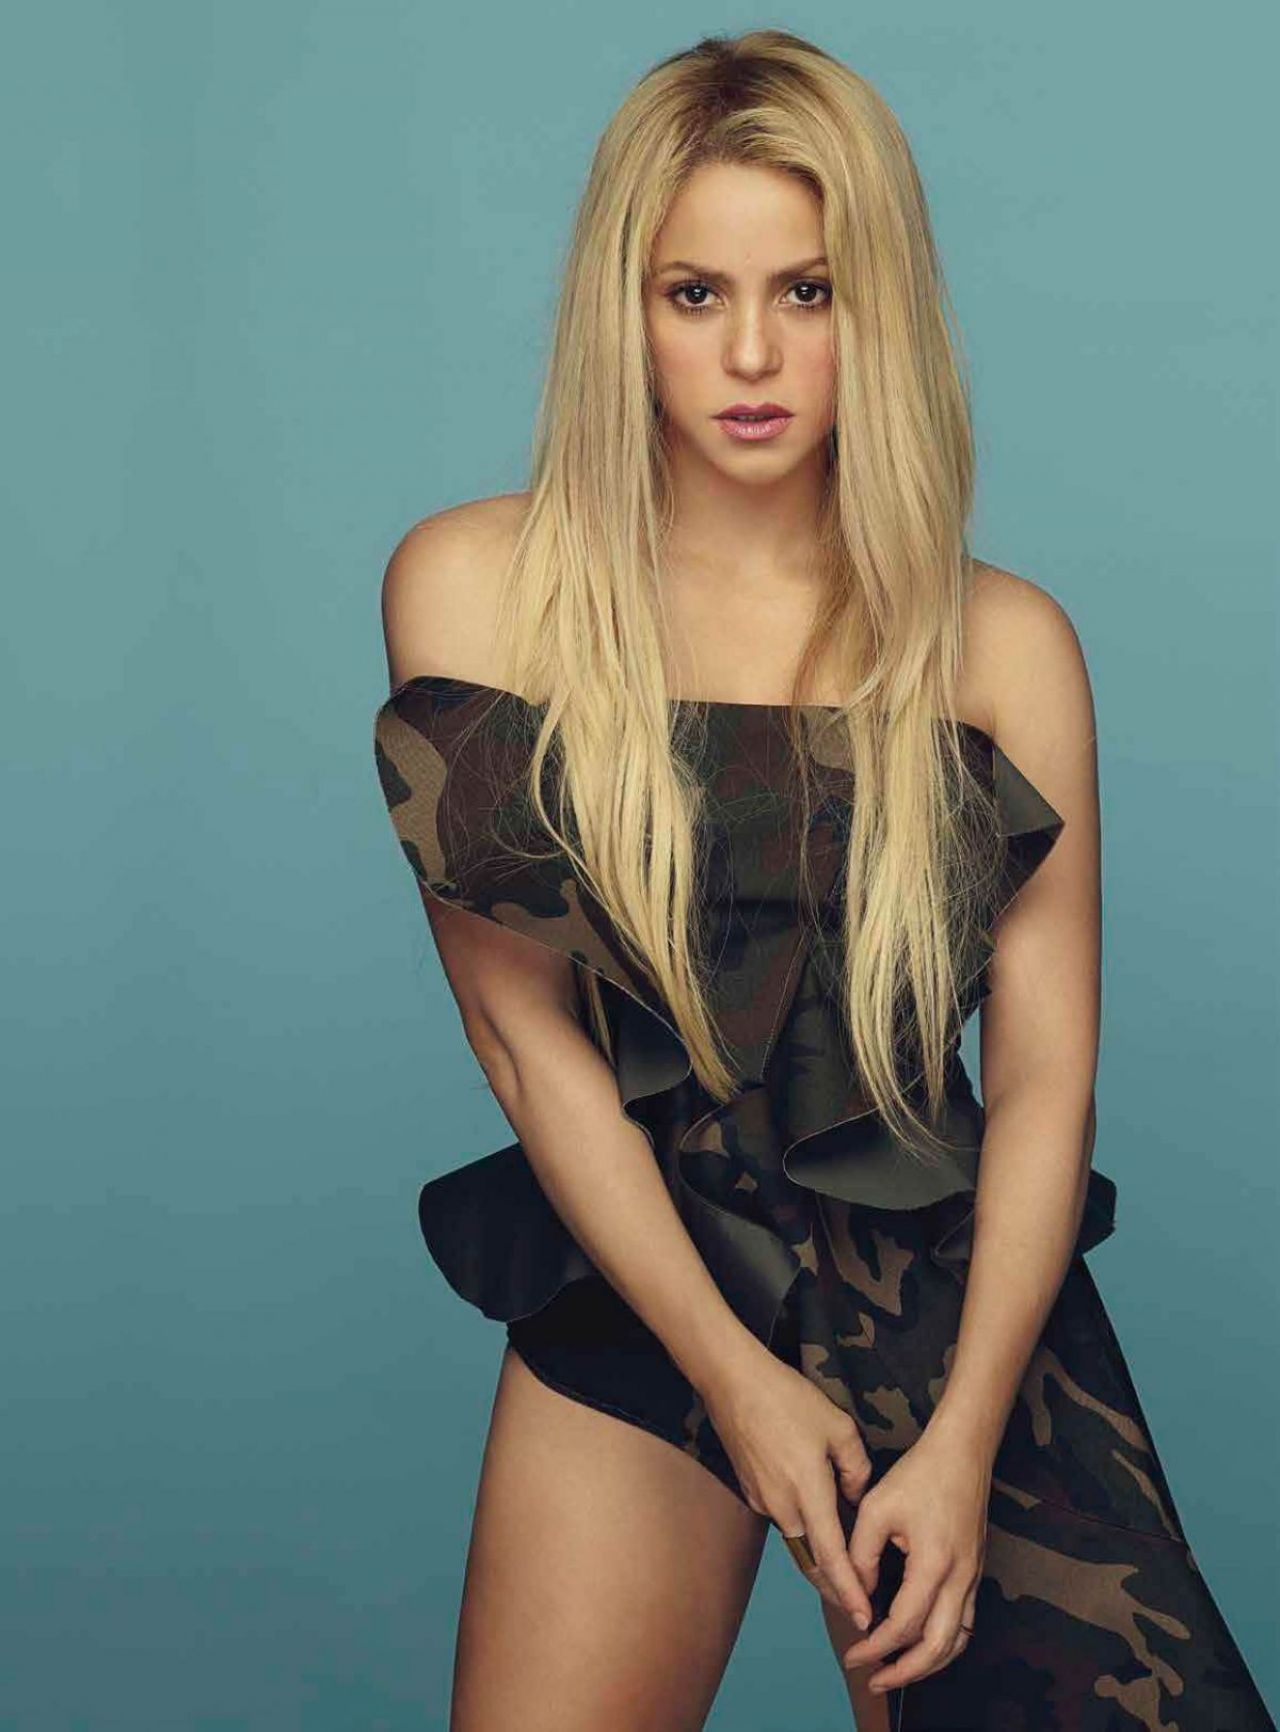 Shakira - The best selling South American singer of all time